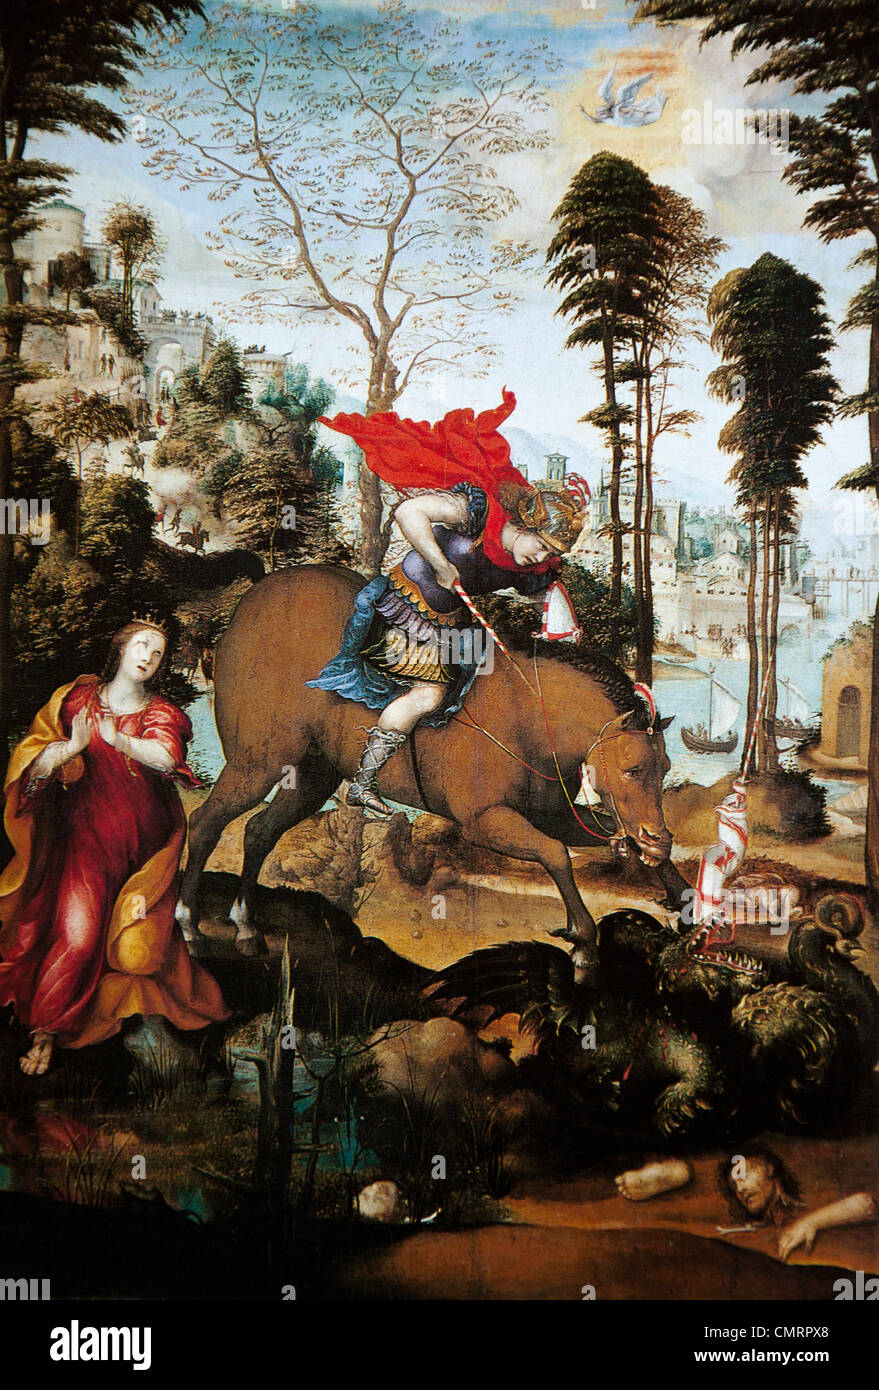 St George And The Dragon, Il Sodoma (Giovanni Antonio Bazzi), National Gallery of Art, Washington, DC, USA - Stock Image